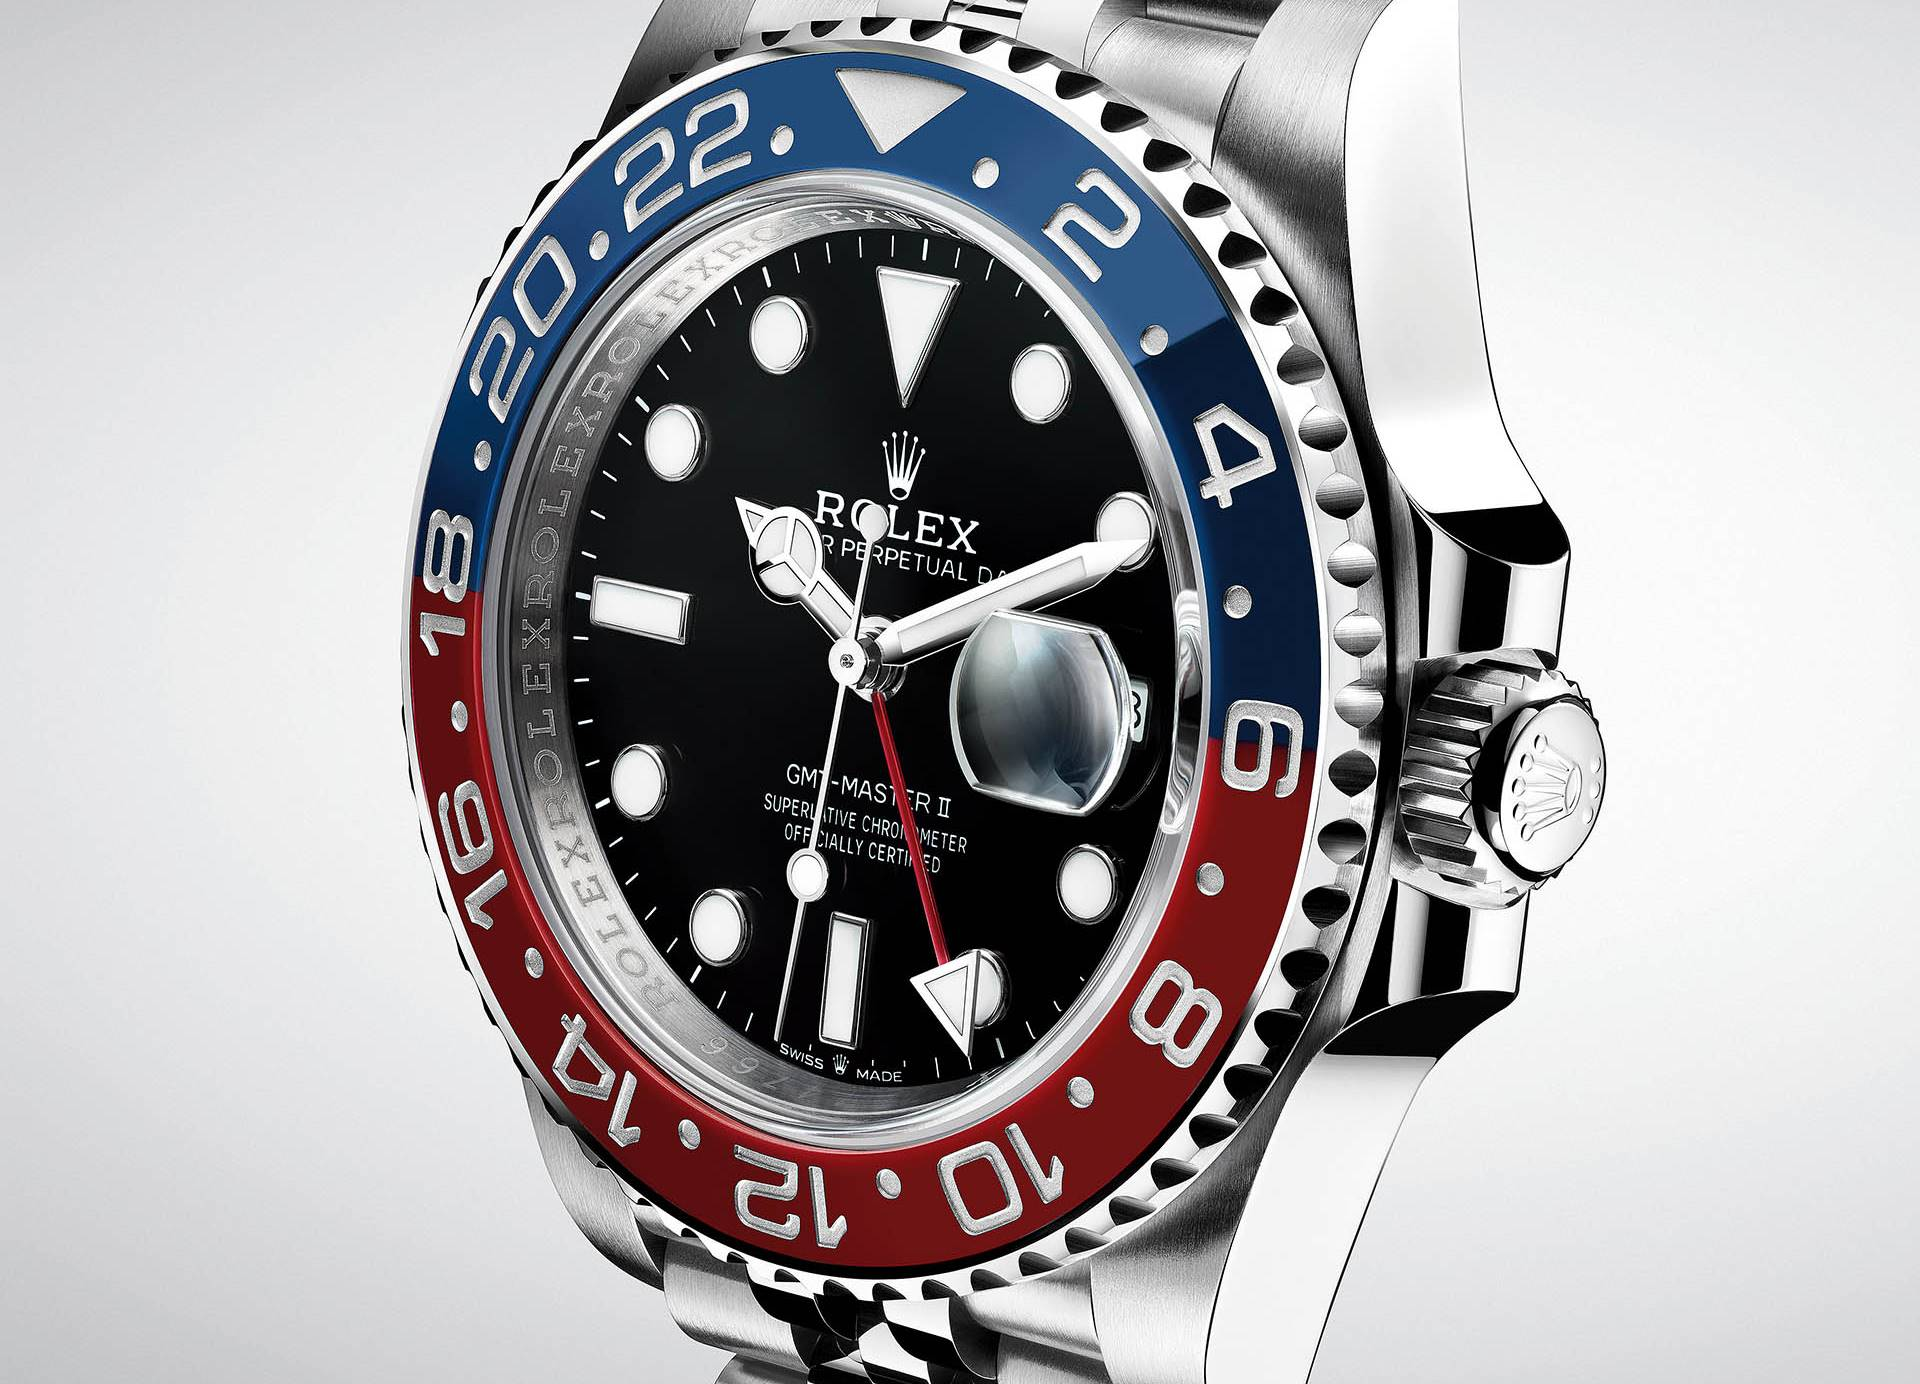 Rolex Oyster Perpetual GMT-Master II.